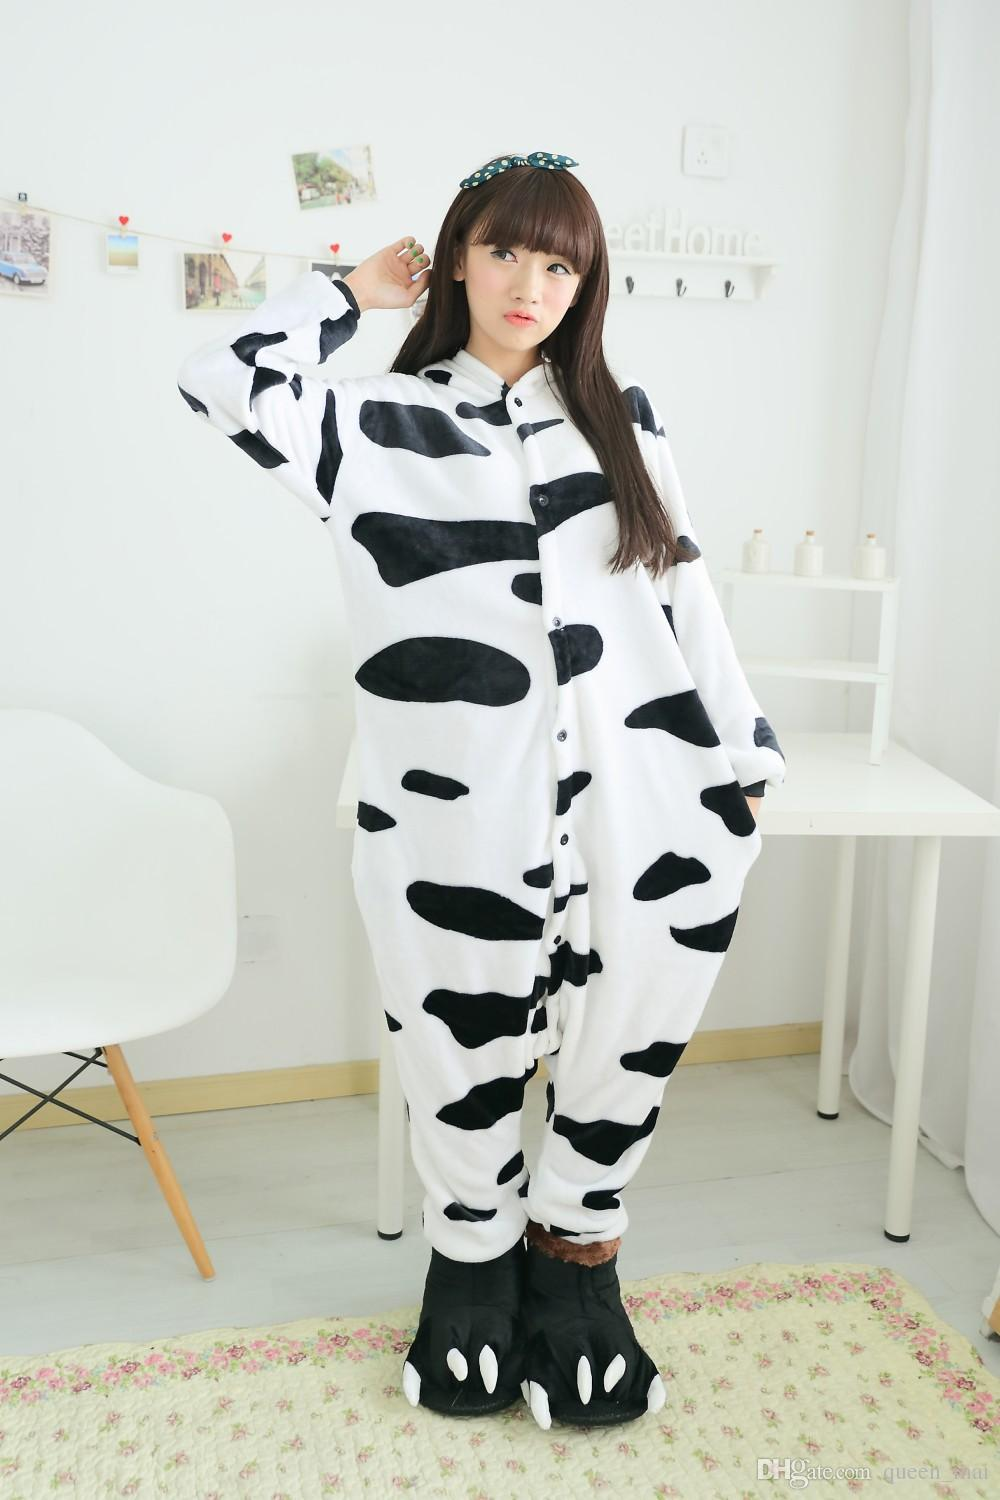 Furry Fleece Lovely Adult Unisex Animali Bella latte mucca da latte Pigiama Tutina Tutina Cosplay latte Sleepwear Cartoon mucca tutina tuta